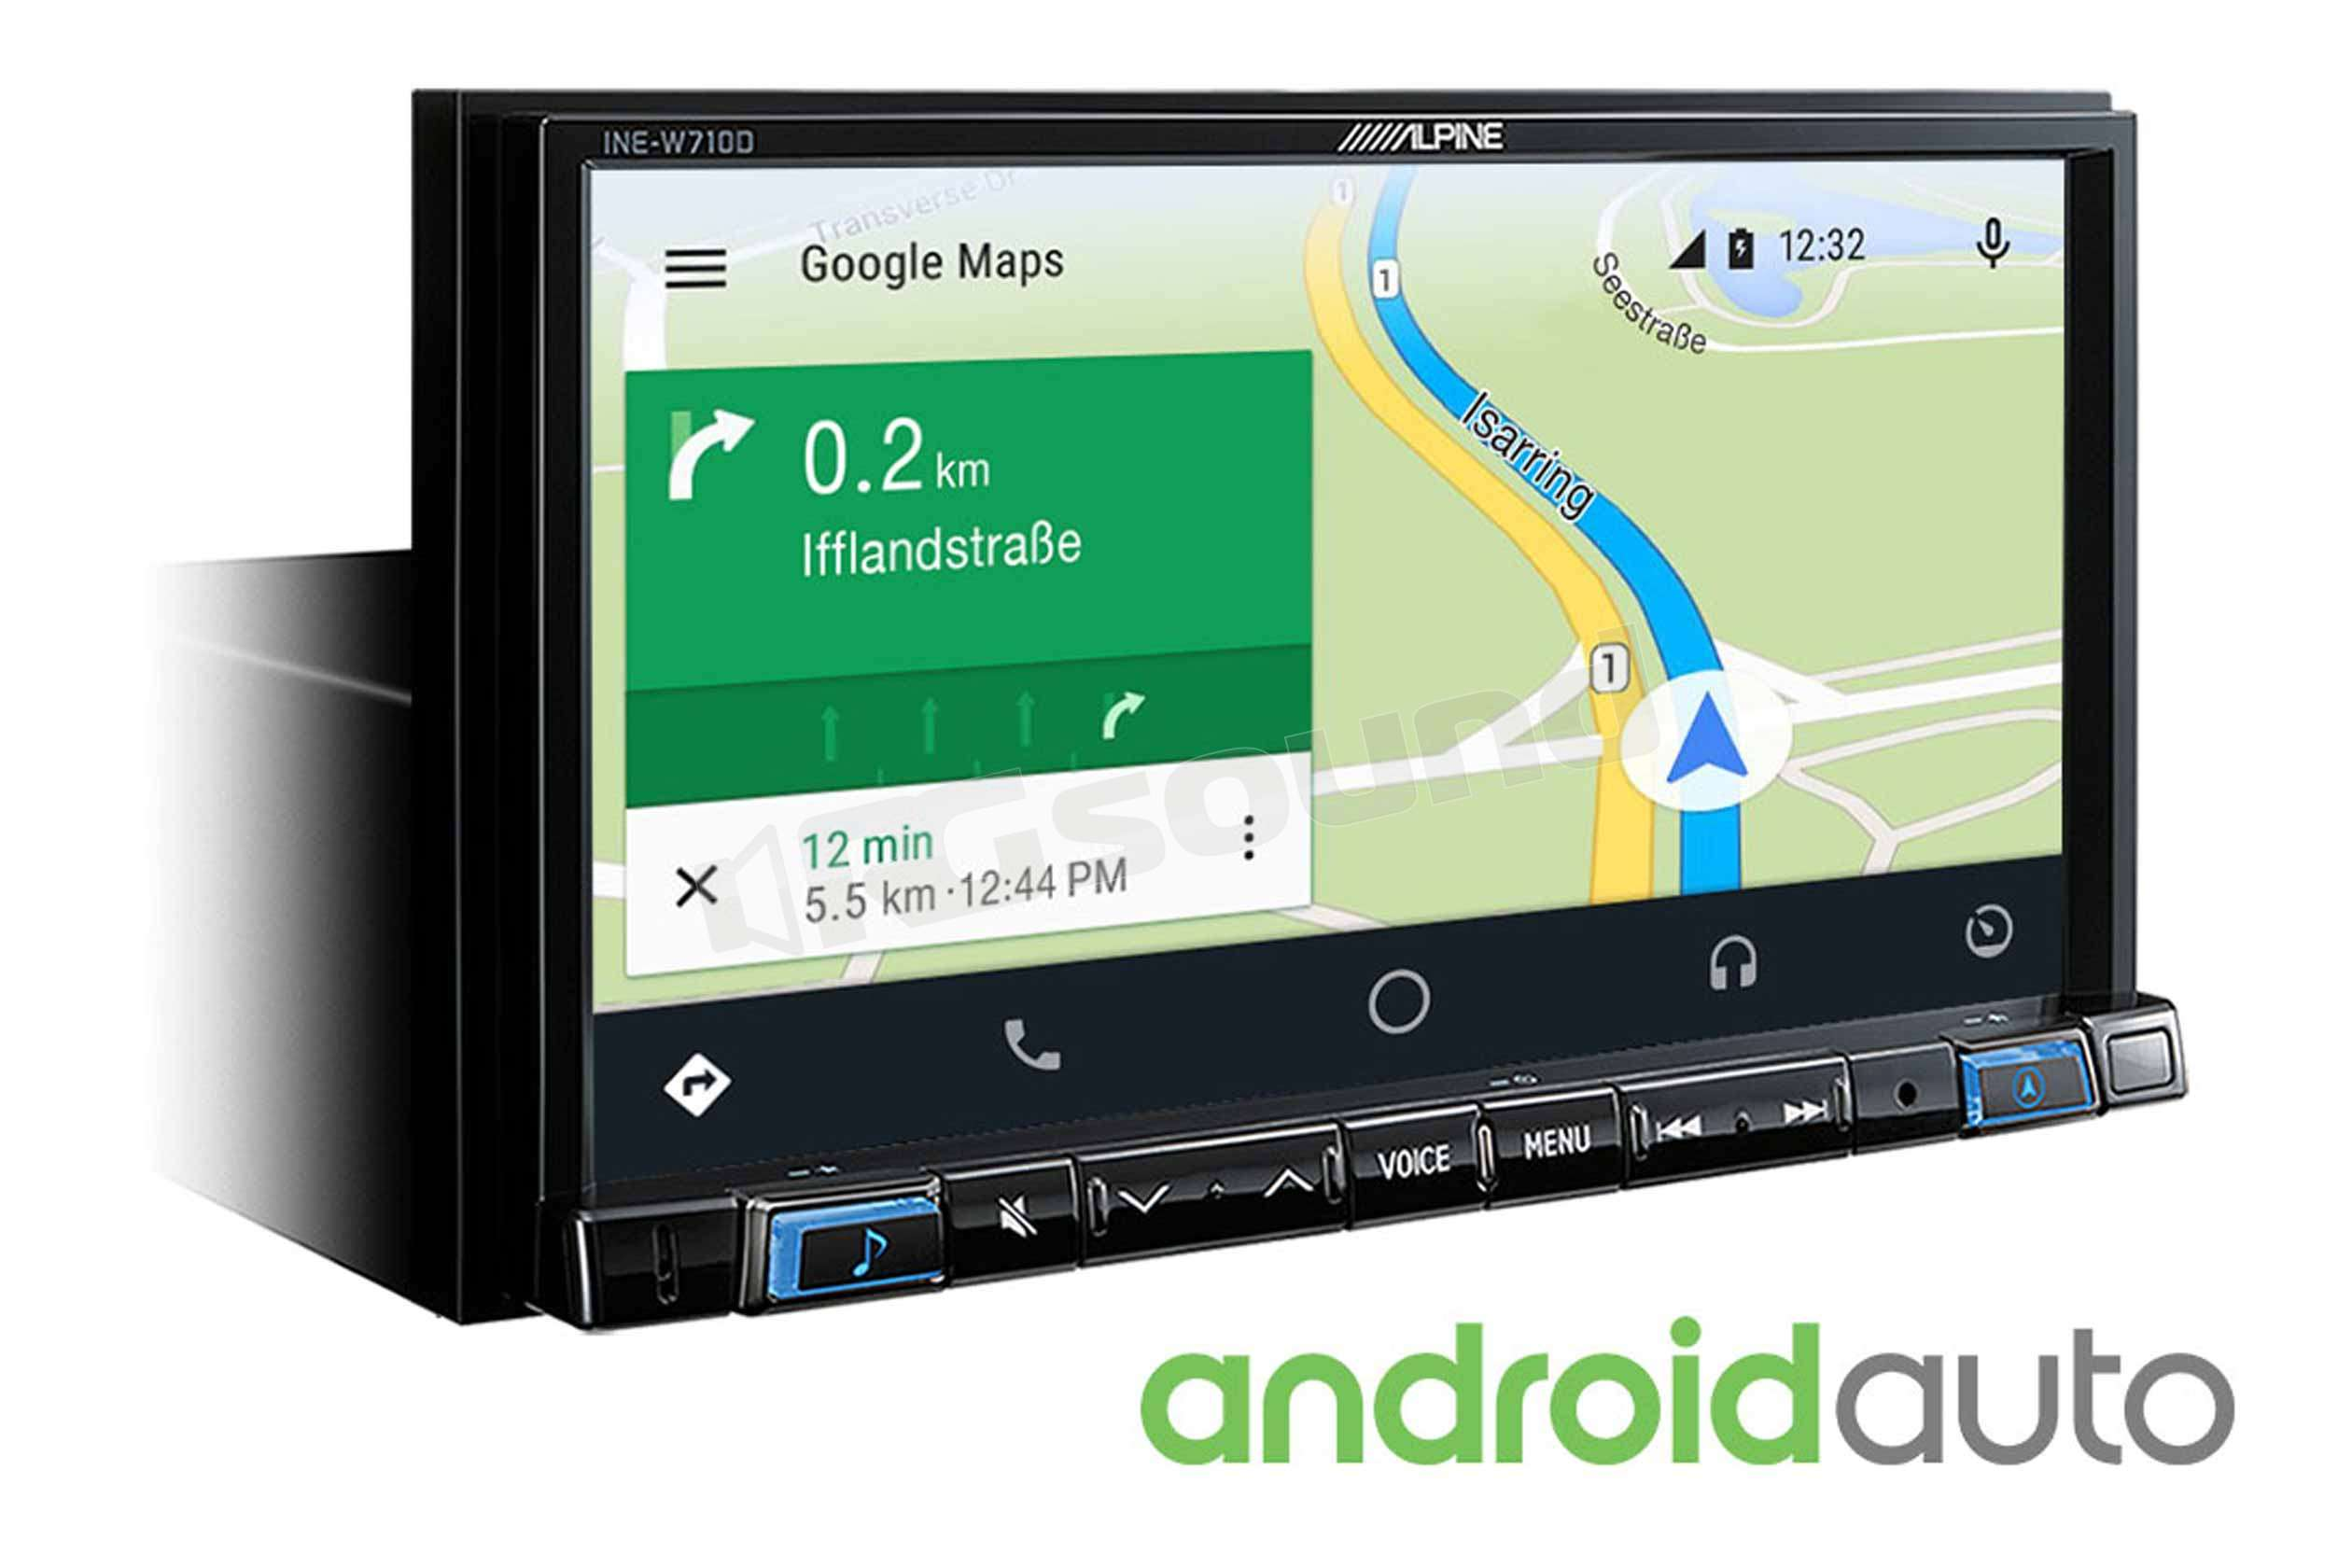 alpine ine w710d apple car play android auto monitor